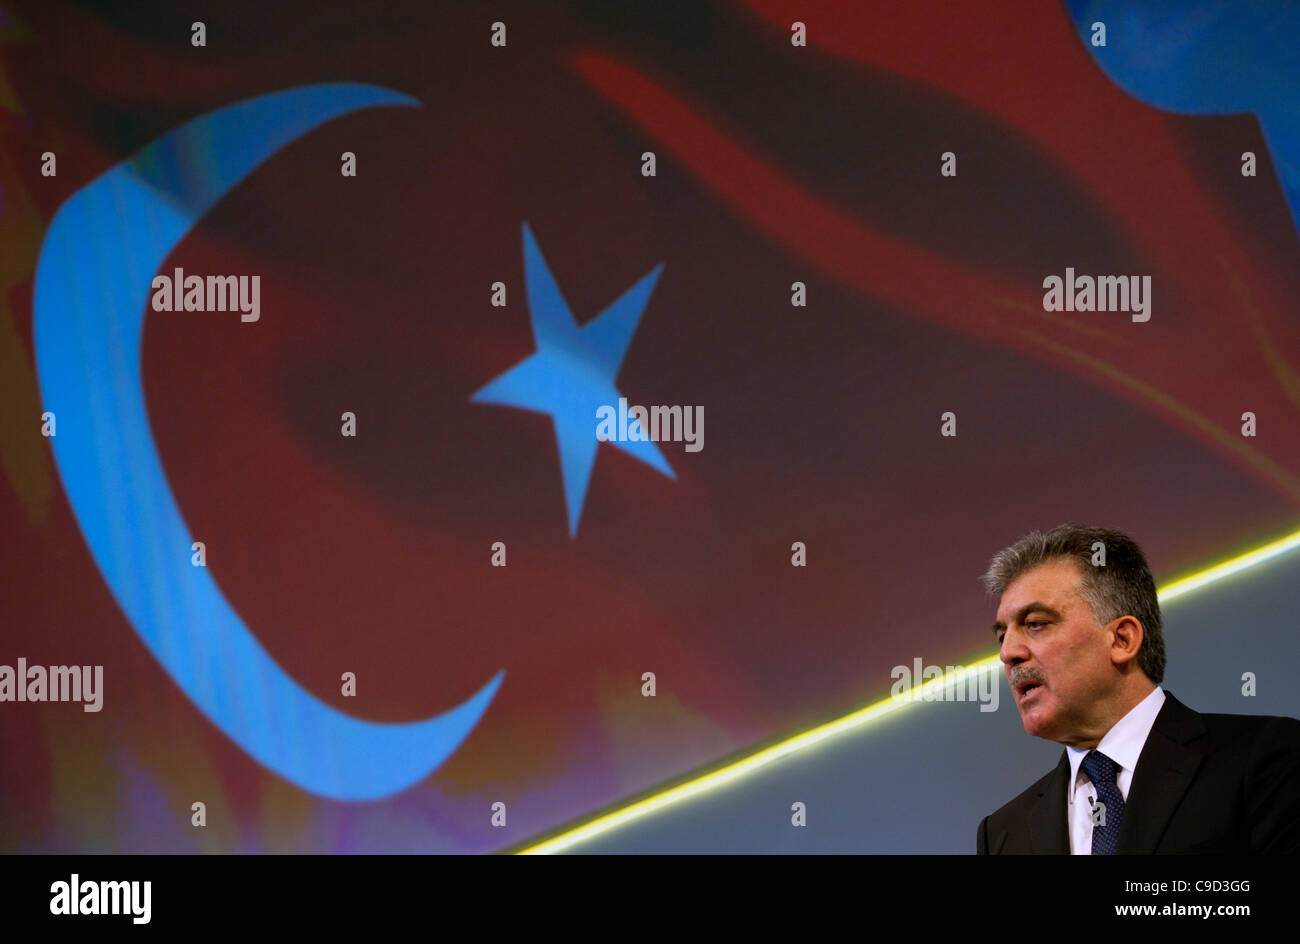 Abdullah Gul, President of Turkey, speaks at a business conference in London November 2011 Stock Photo